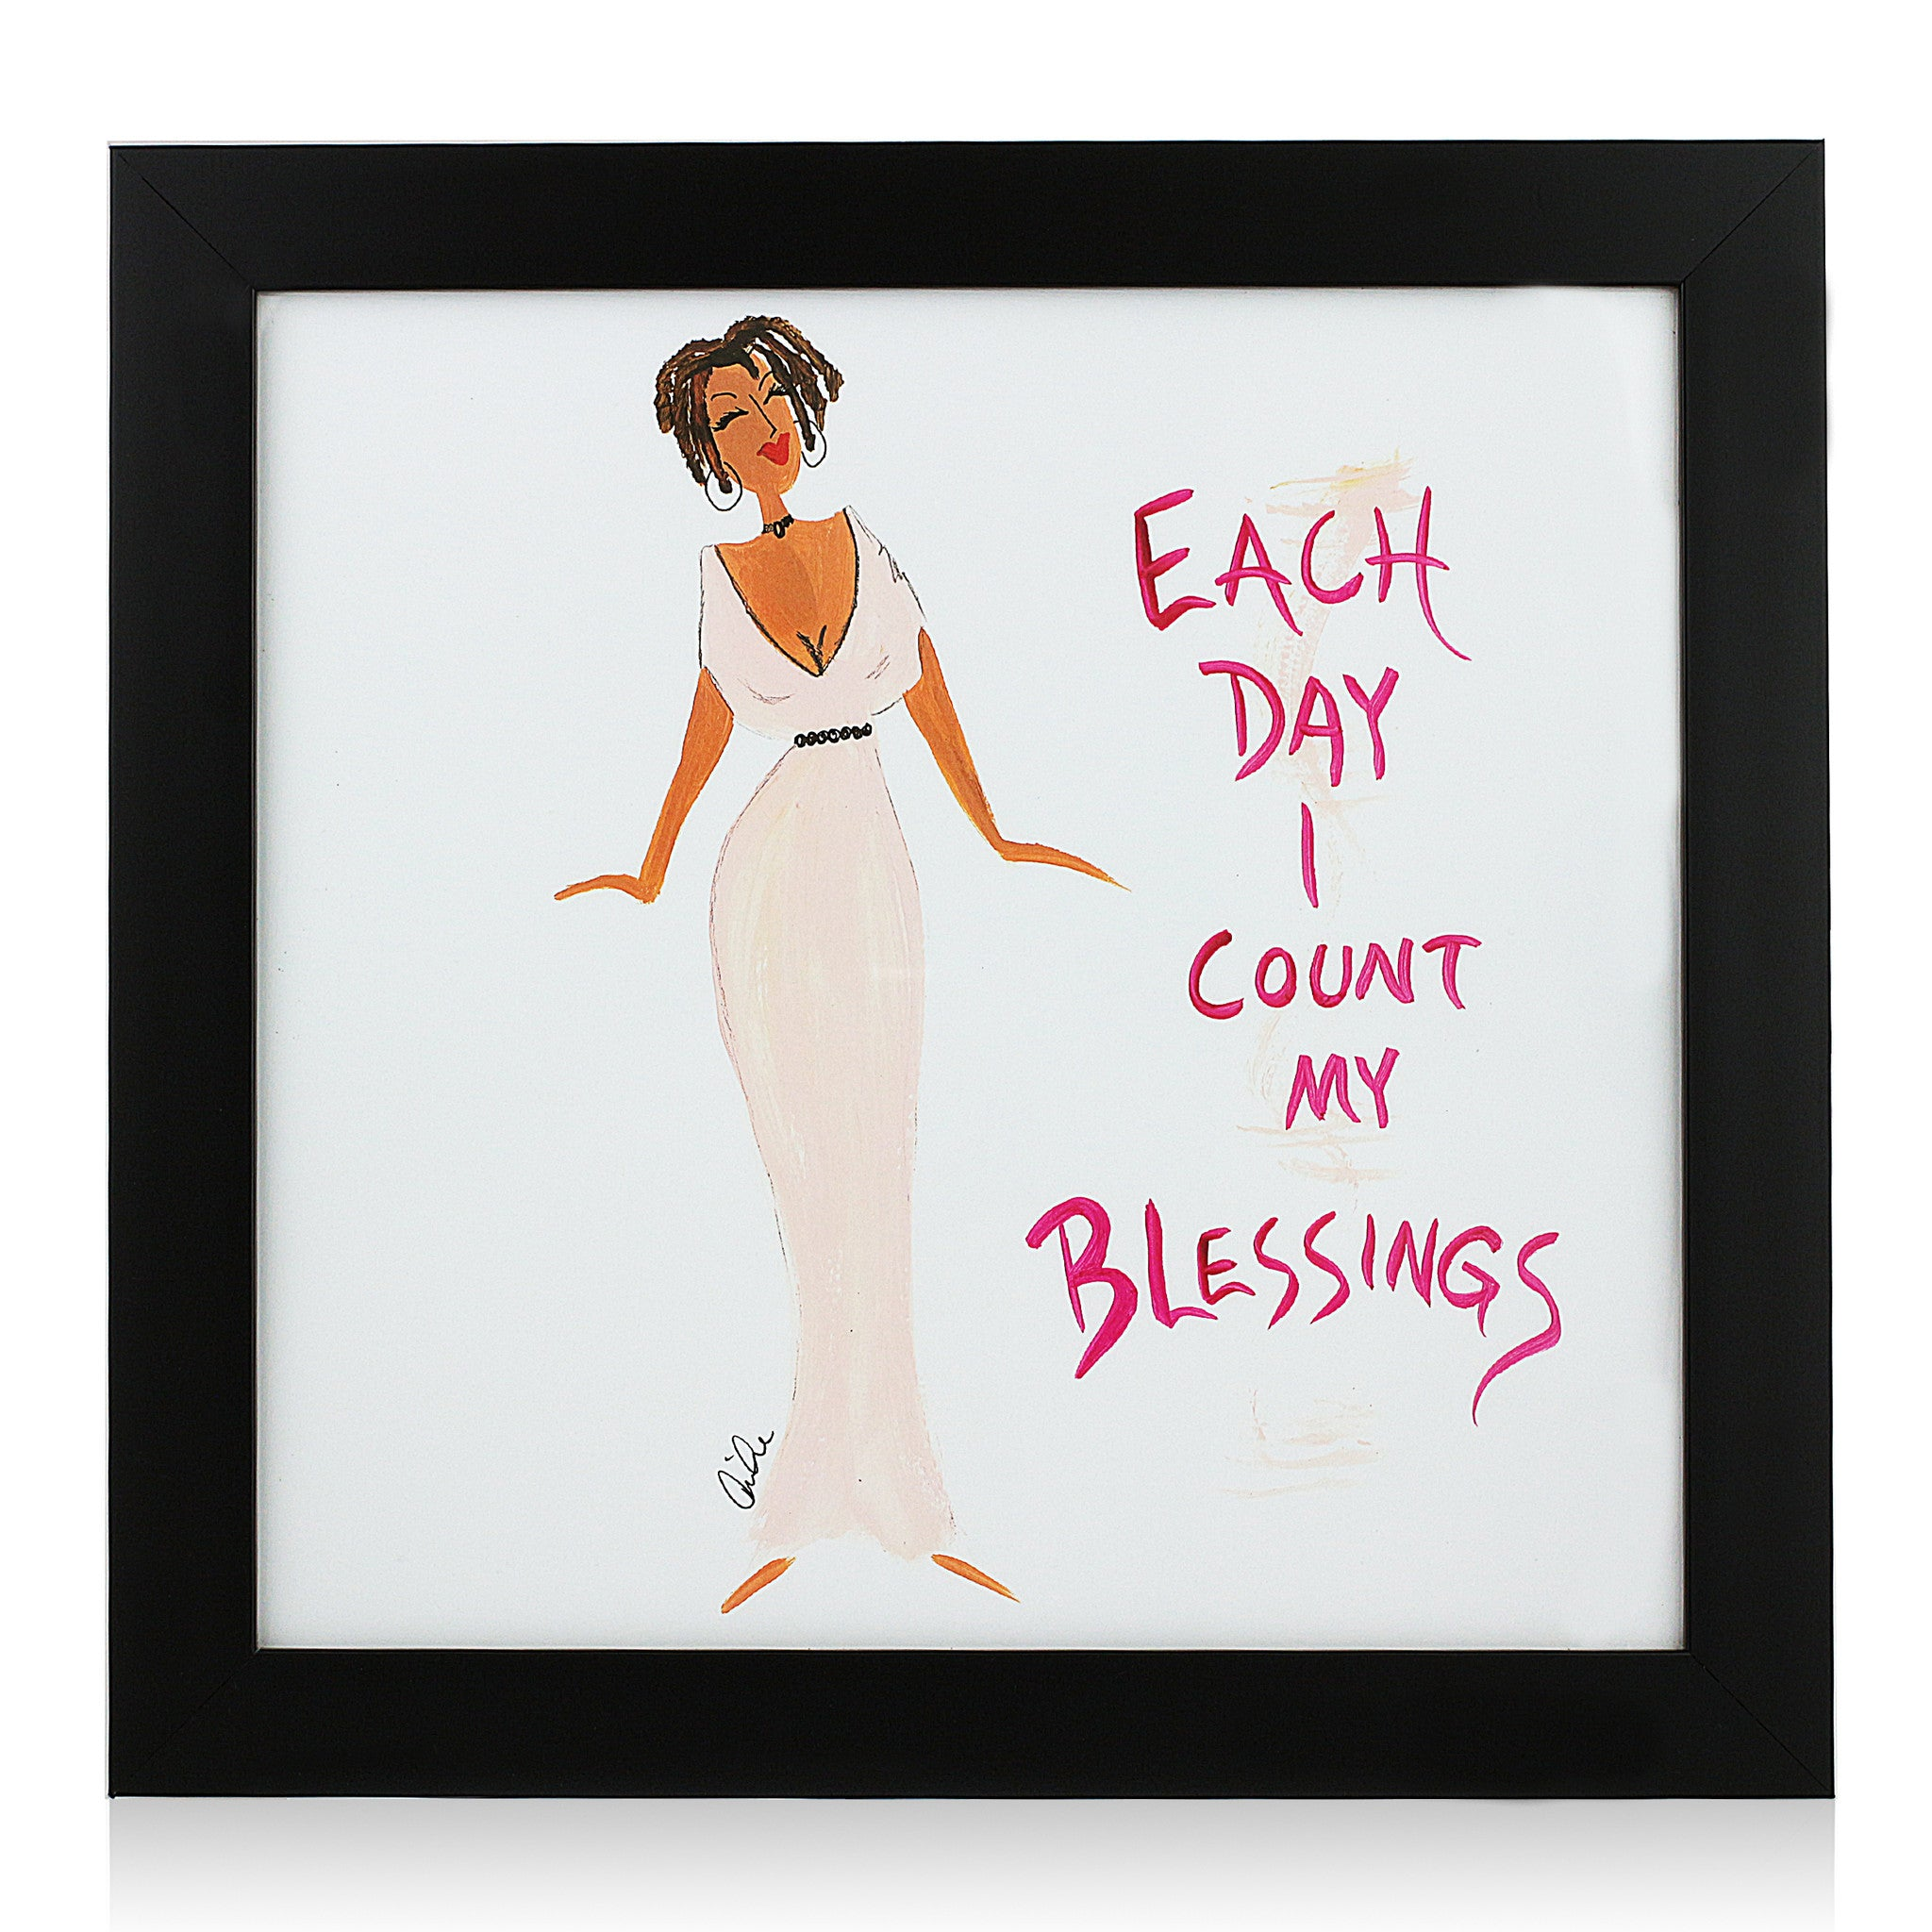 Each Day I Count My Blessings by Cidne Wallace